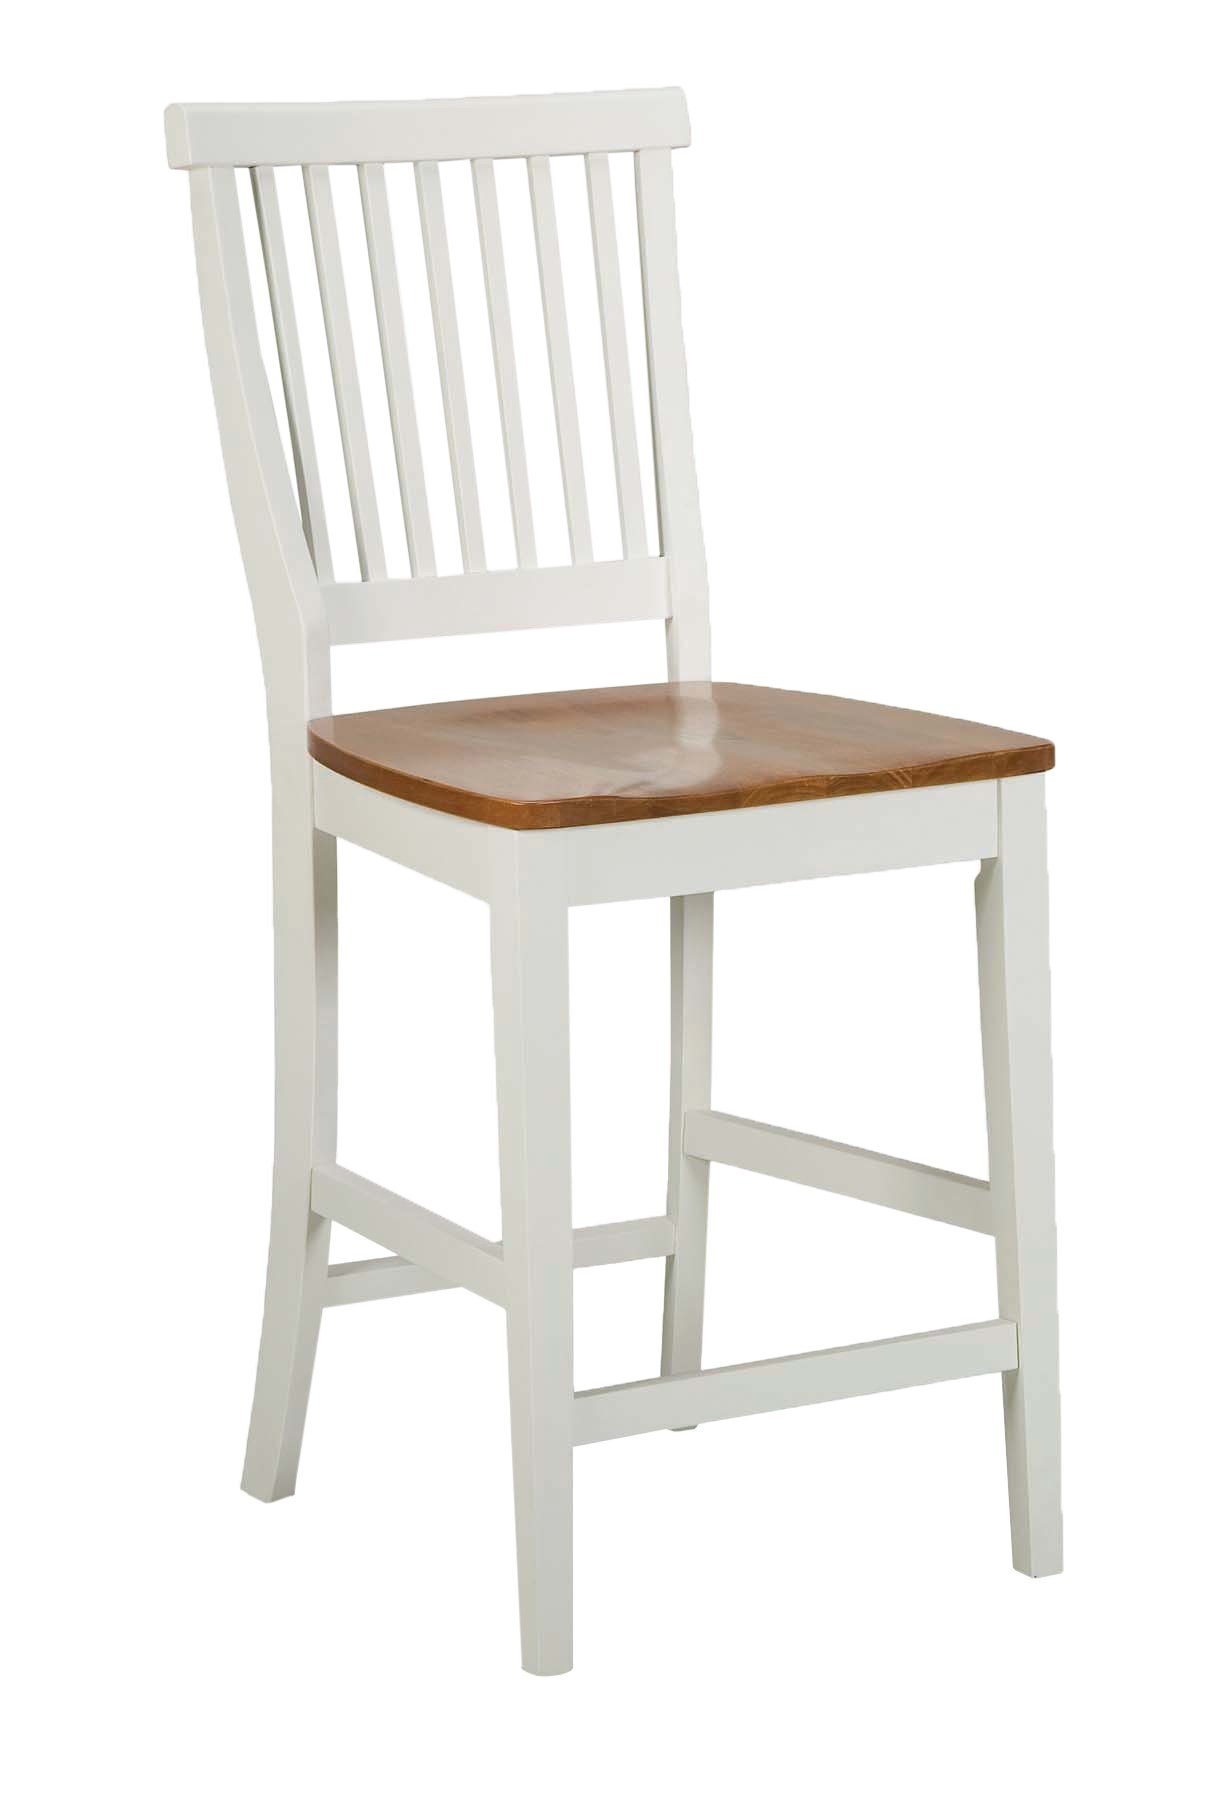 Americana White & Distressed Oak bar Stool, 24'', by Home Styles by Home Styles